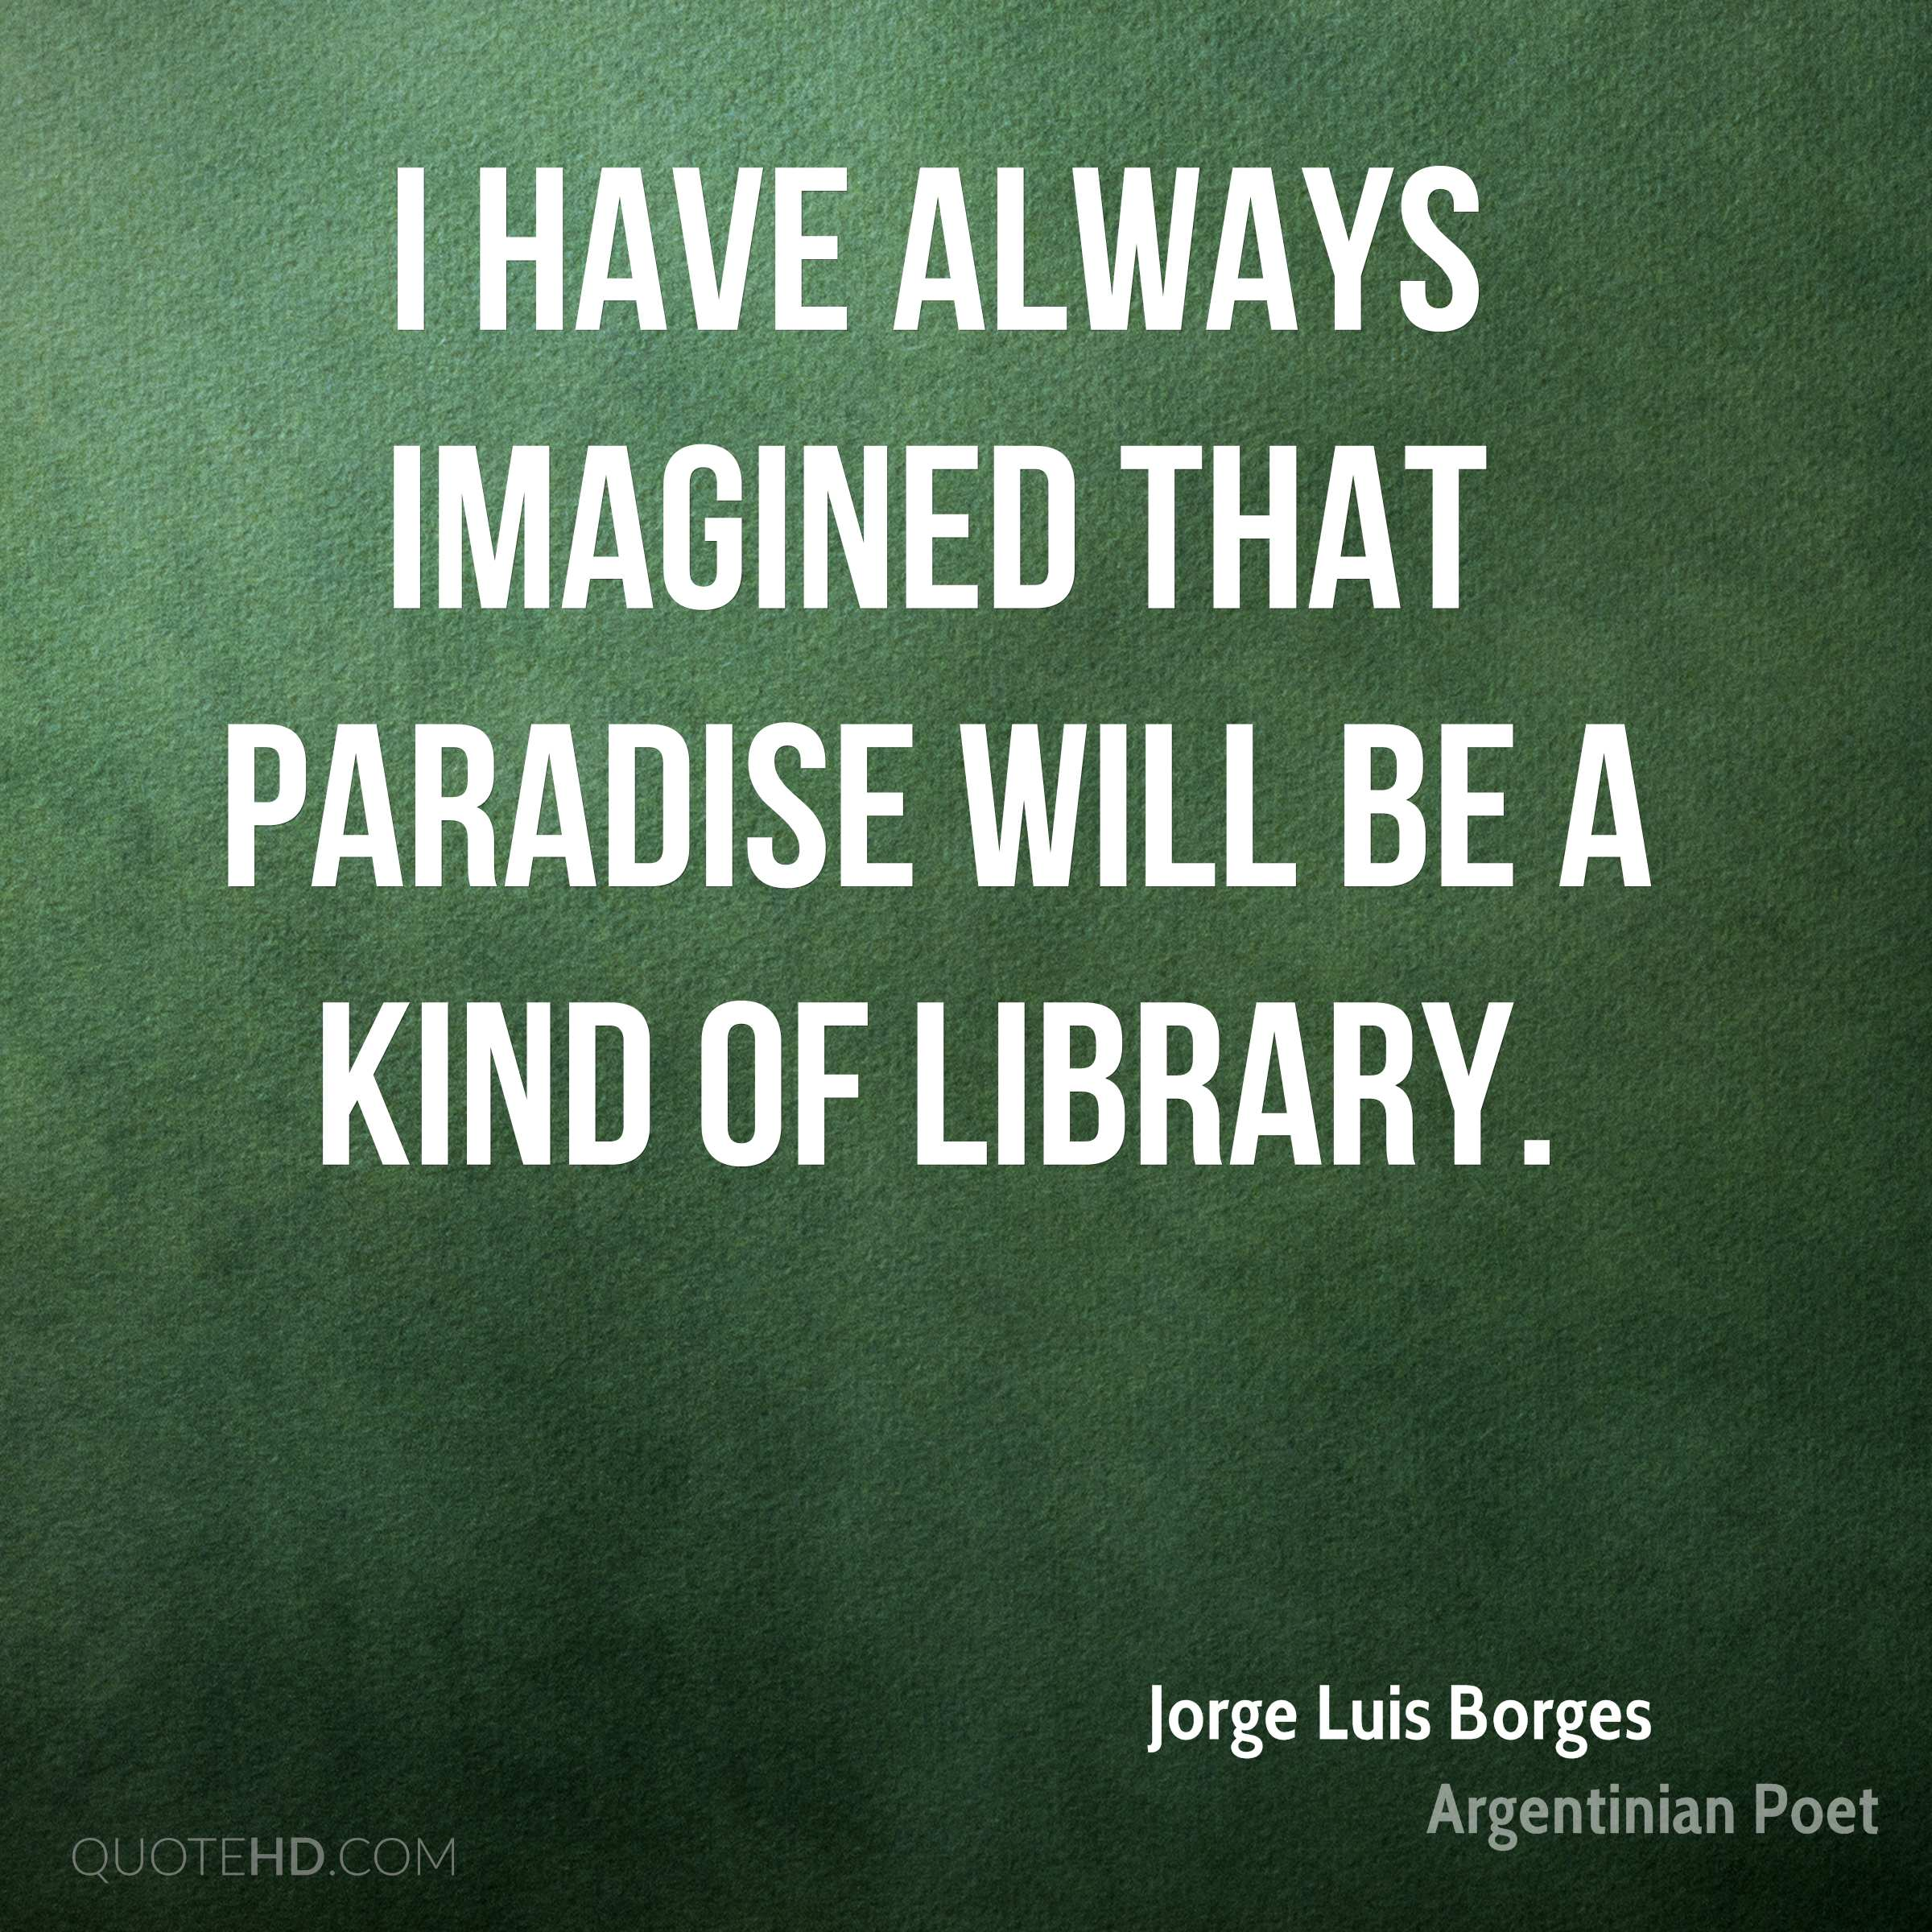 Library Quotes Jorge Luis Borges Imagination Quotes  Quotehd